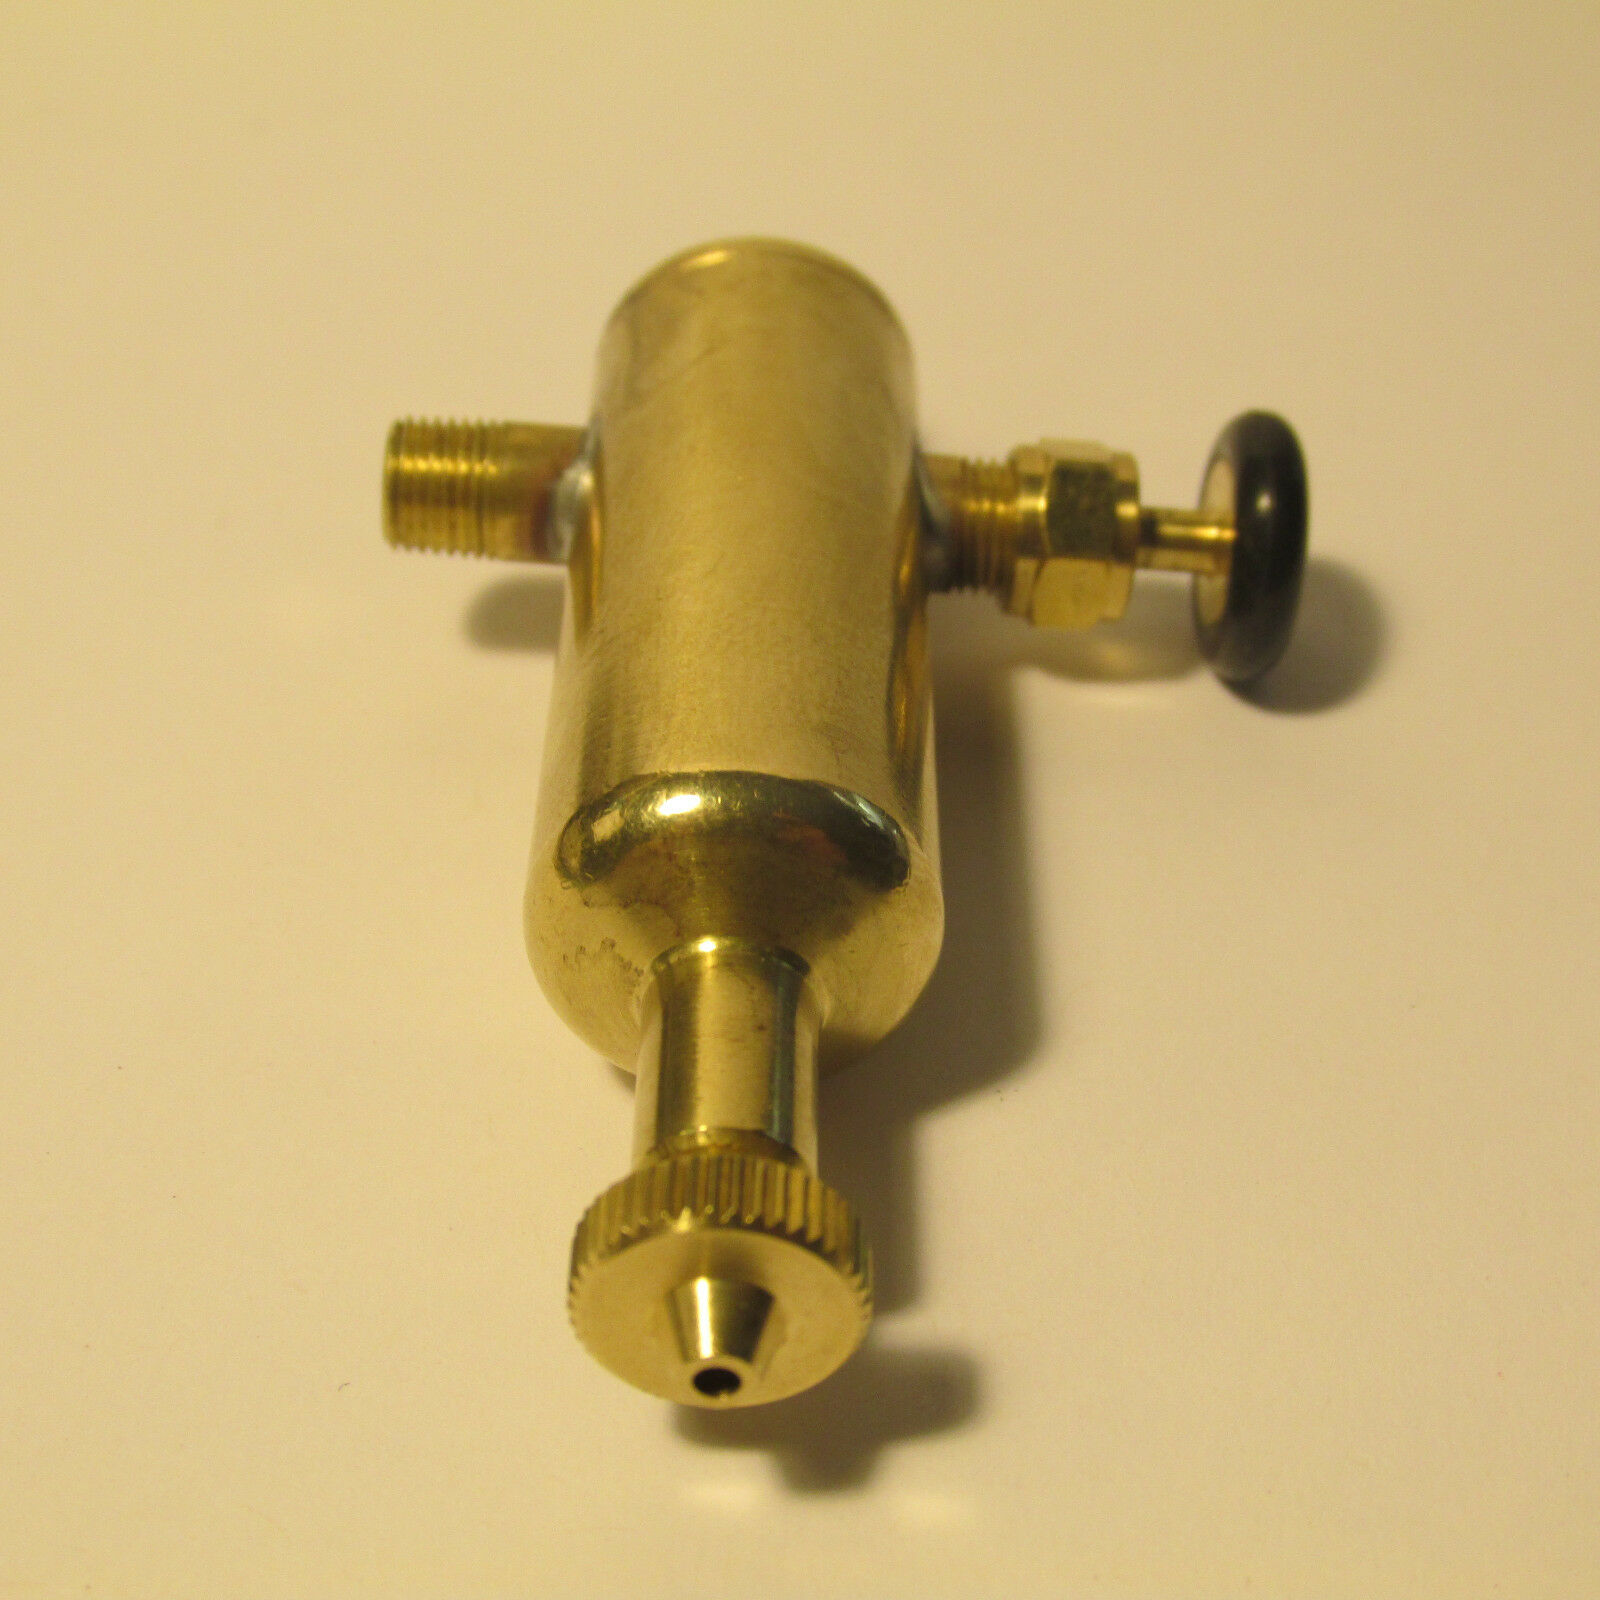 LIVE STEAM DISPLACEMENT LUBRICATOR 3 16-40 TPI - New Train Parts